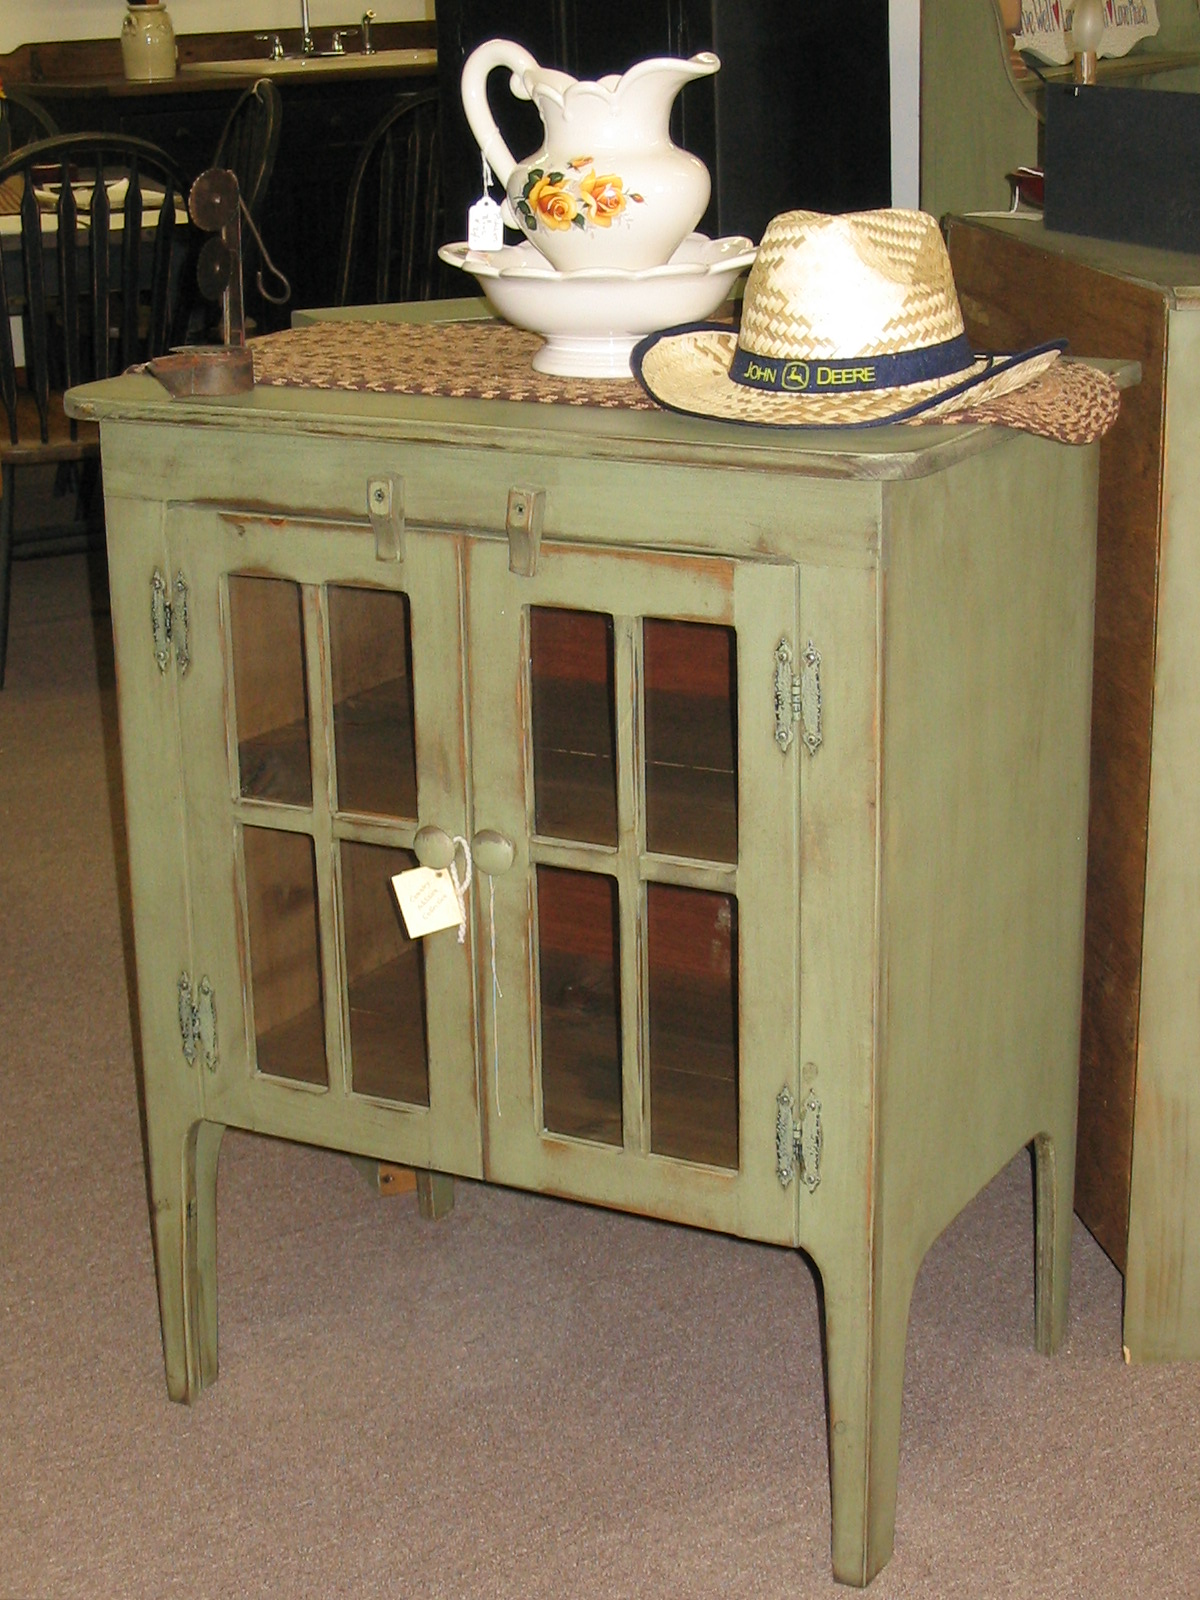 Low Glass Cabinet Country Additions Furniture Birdsboro Pa